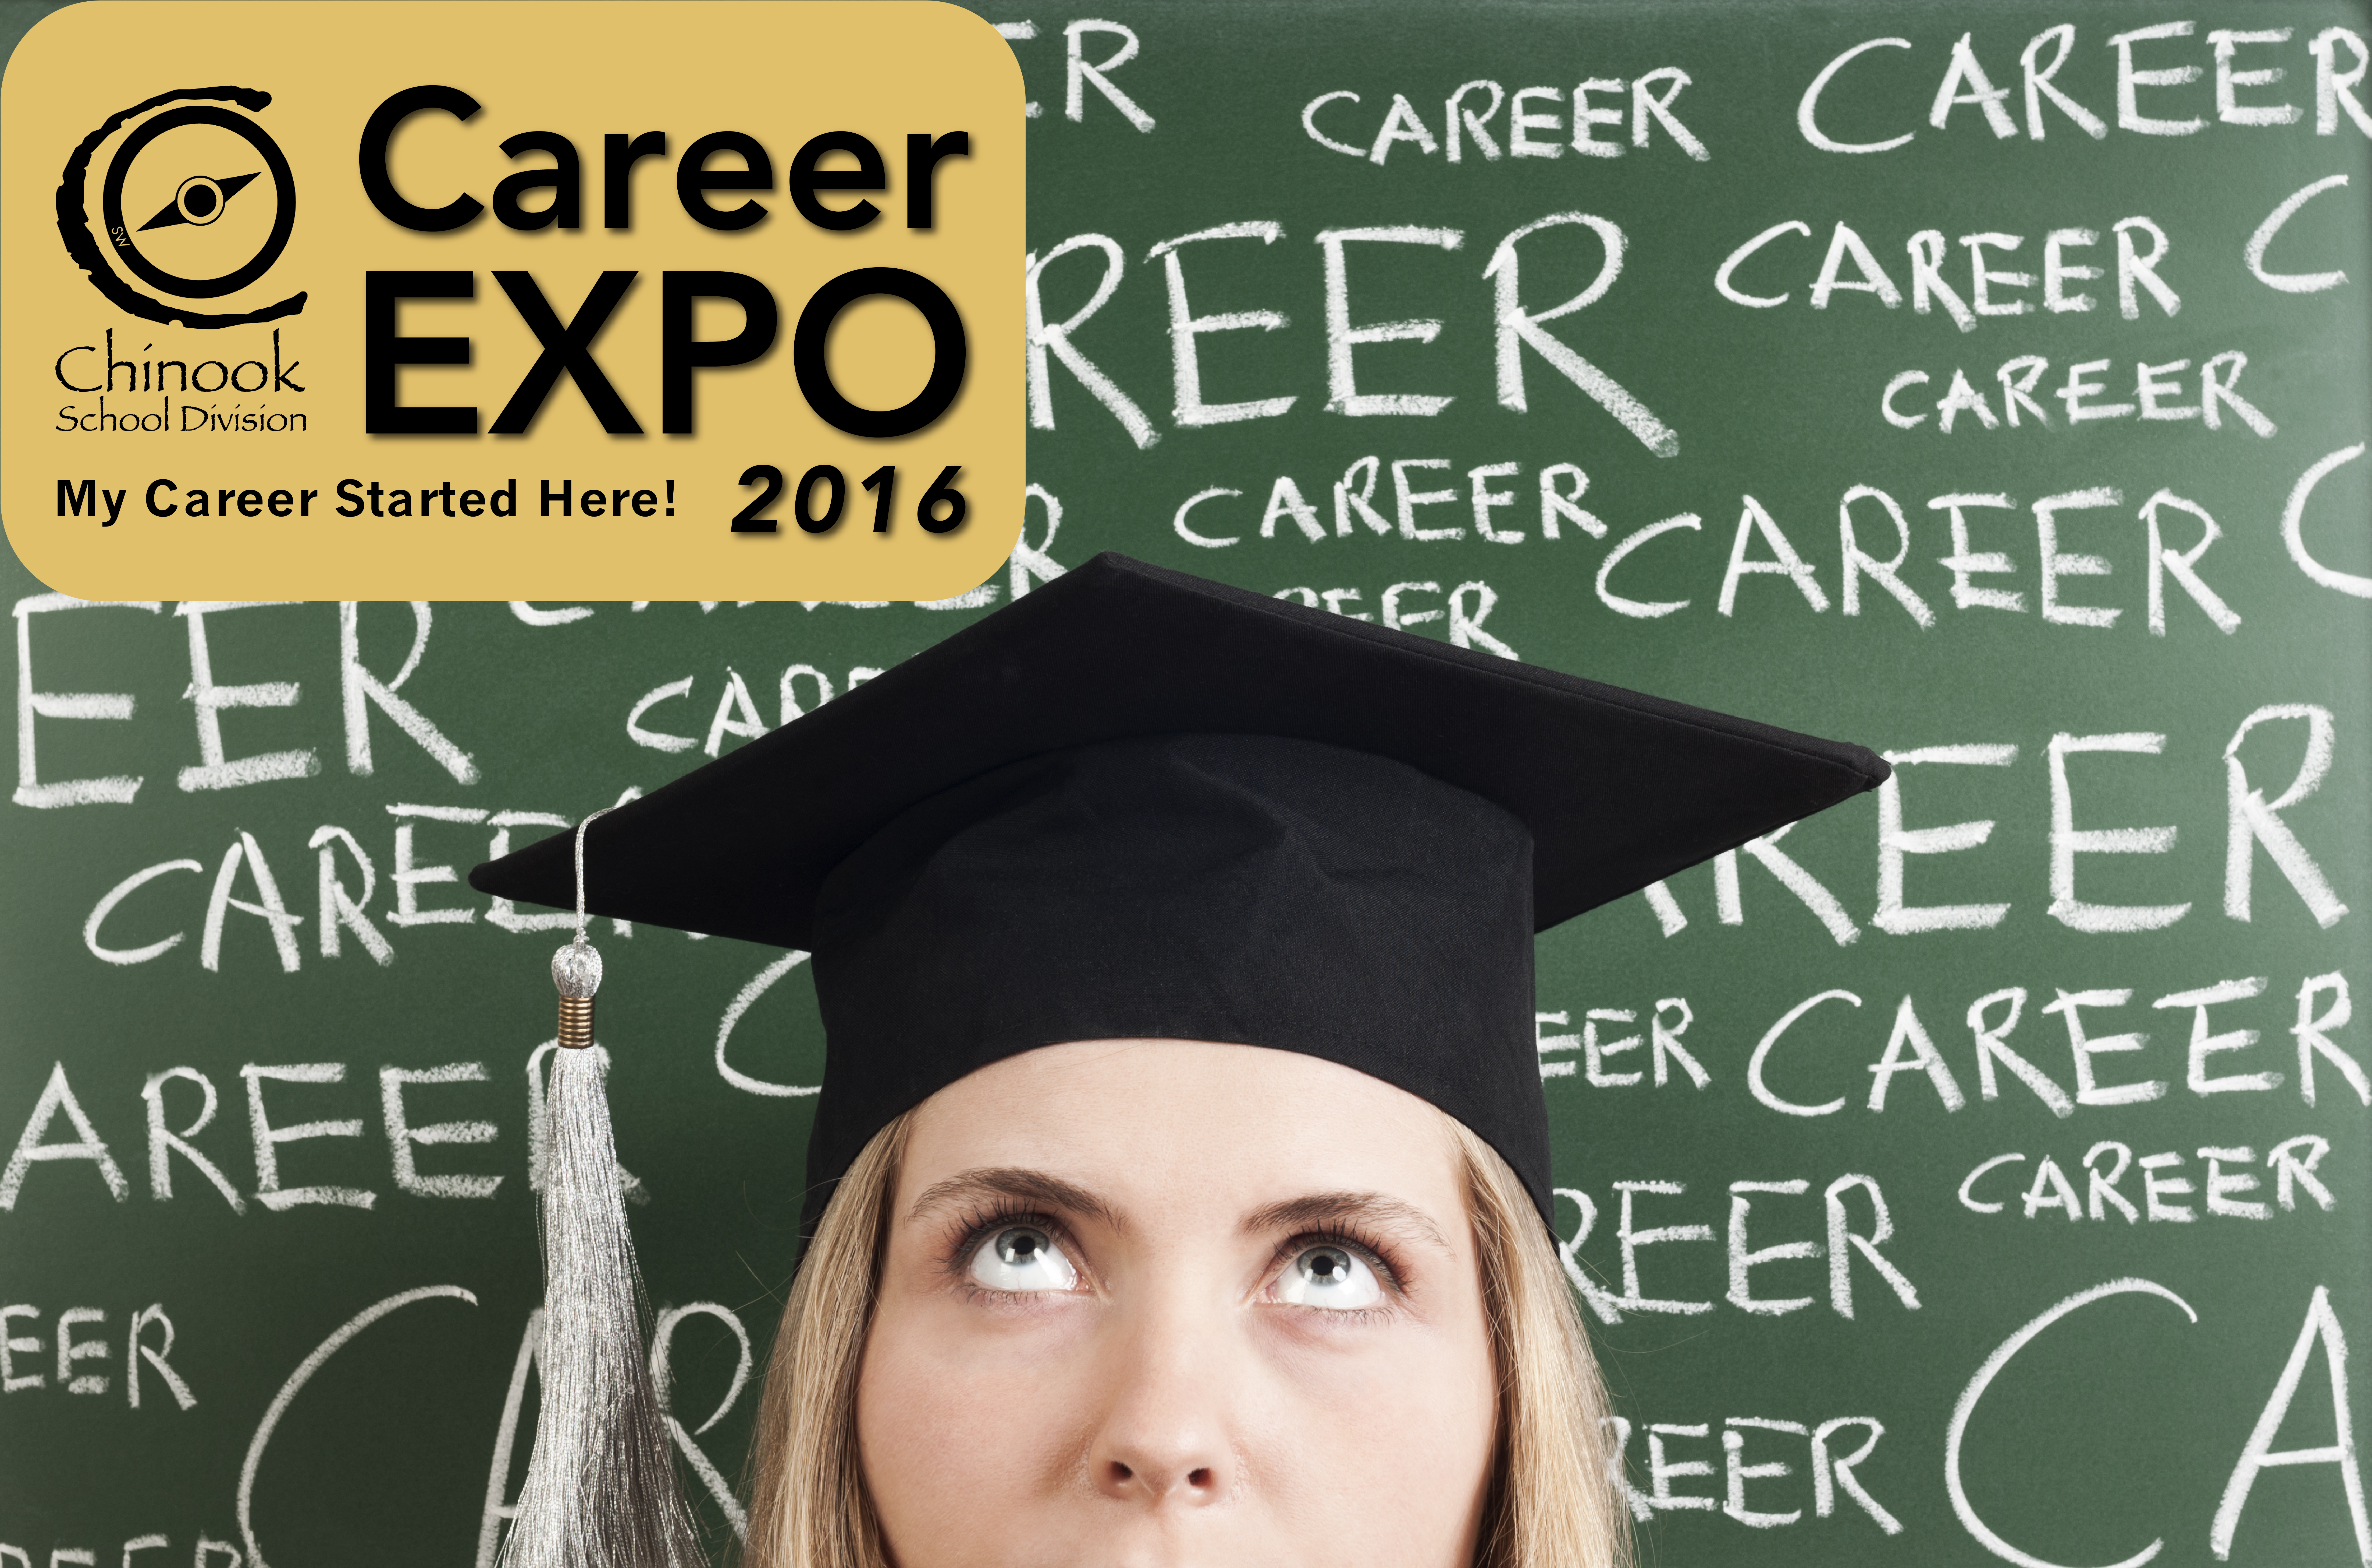 Career%20Expo%202016%20promo%20image-01.jpg